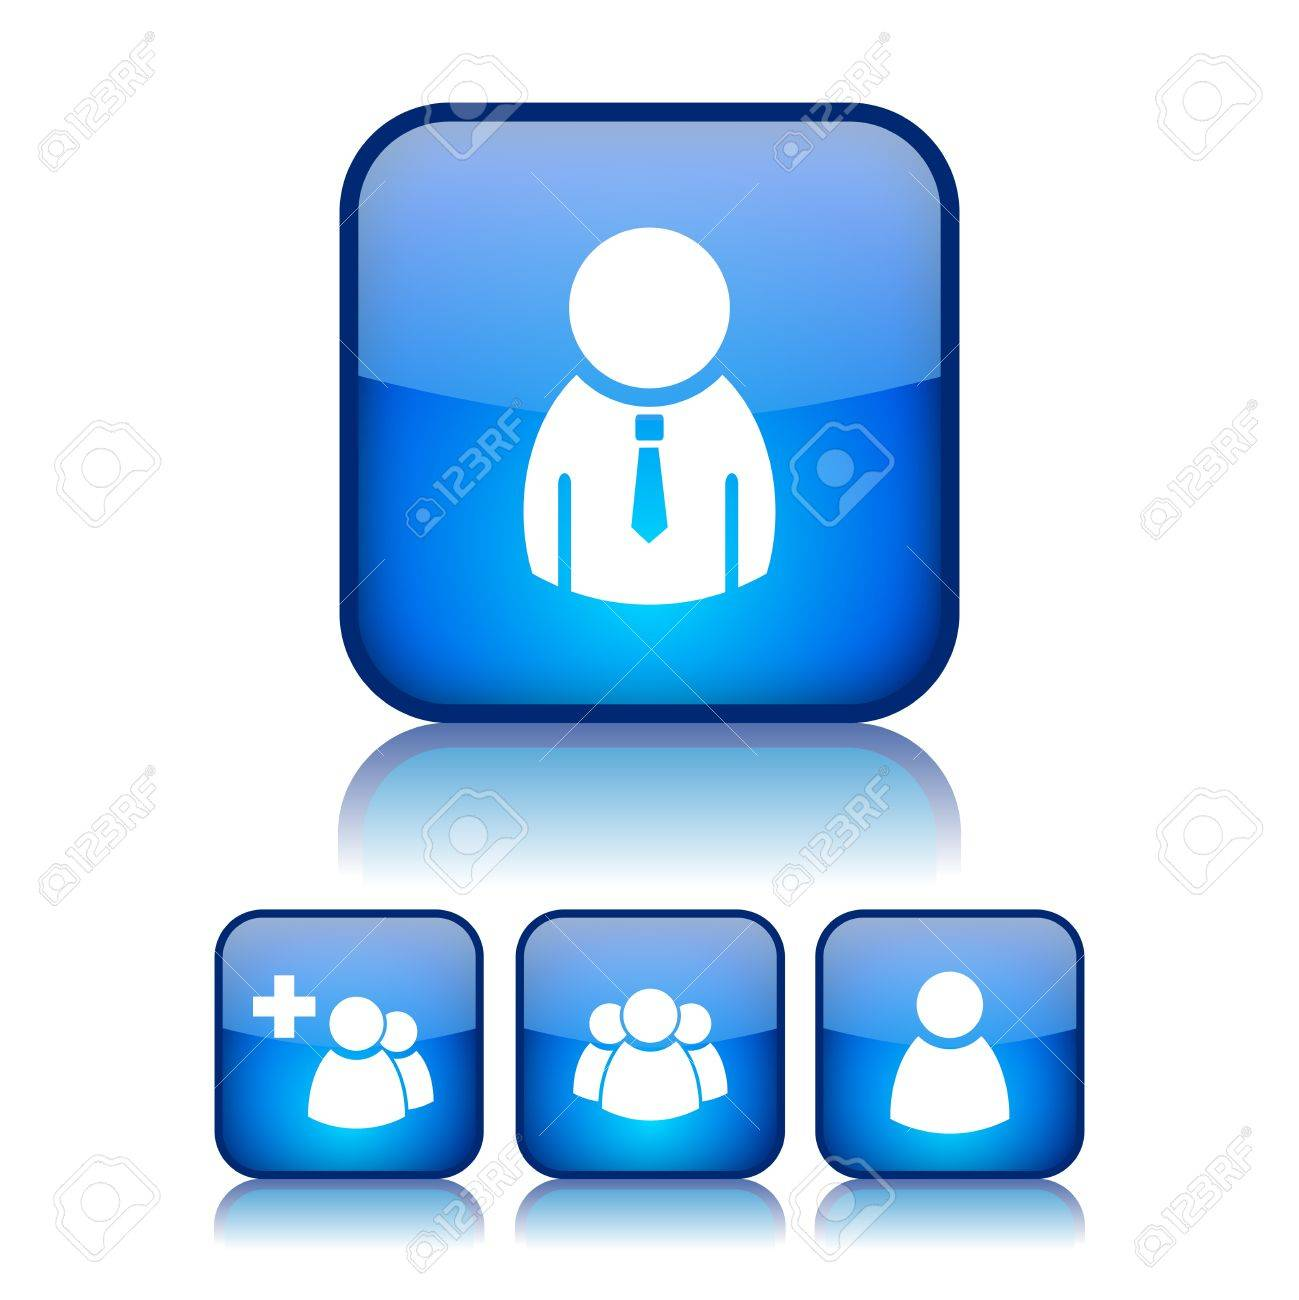 Internet users buttons, illustration Stock Vector - 15167864